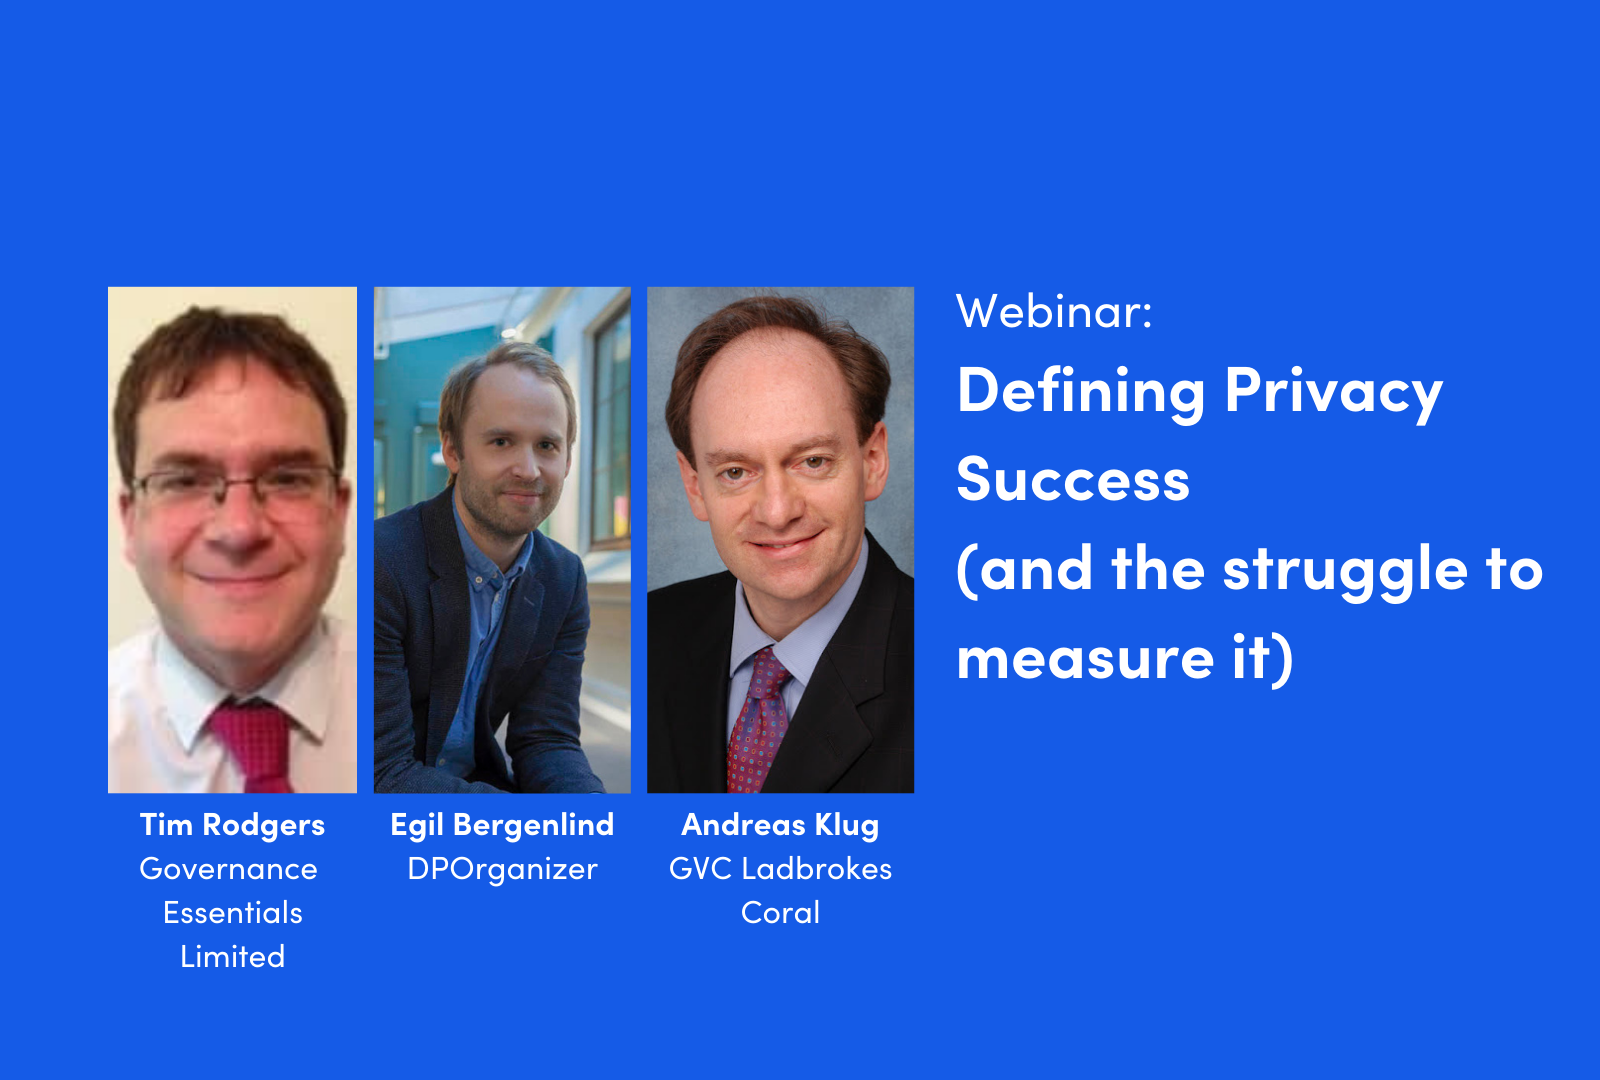 Defining Privacy Success (and the struggle to measure it)